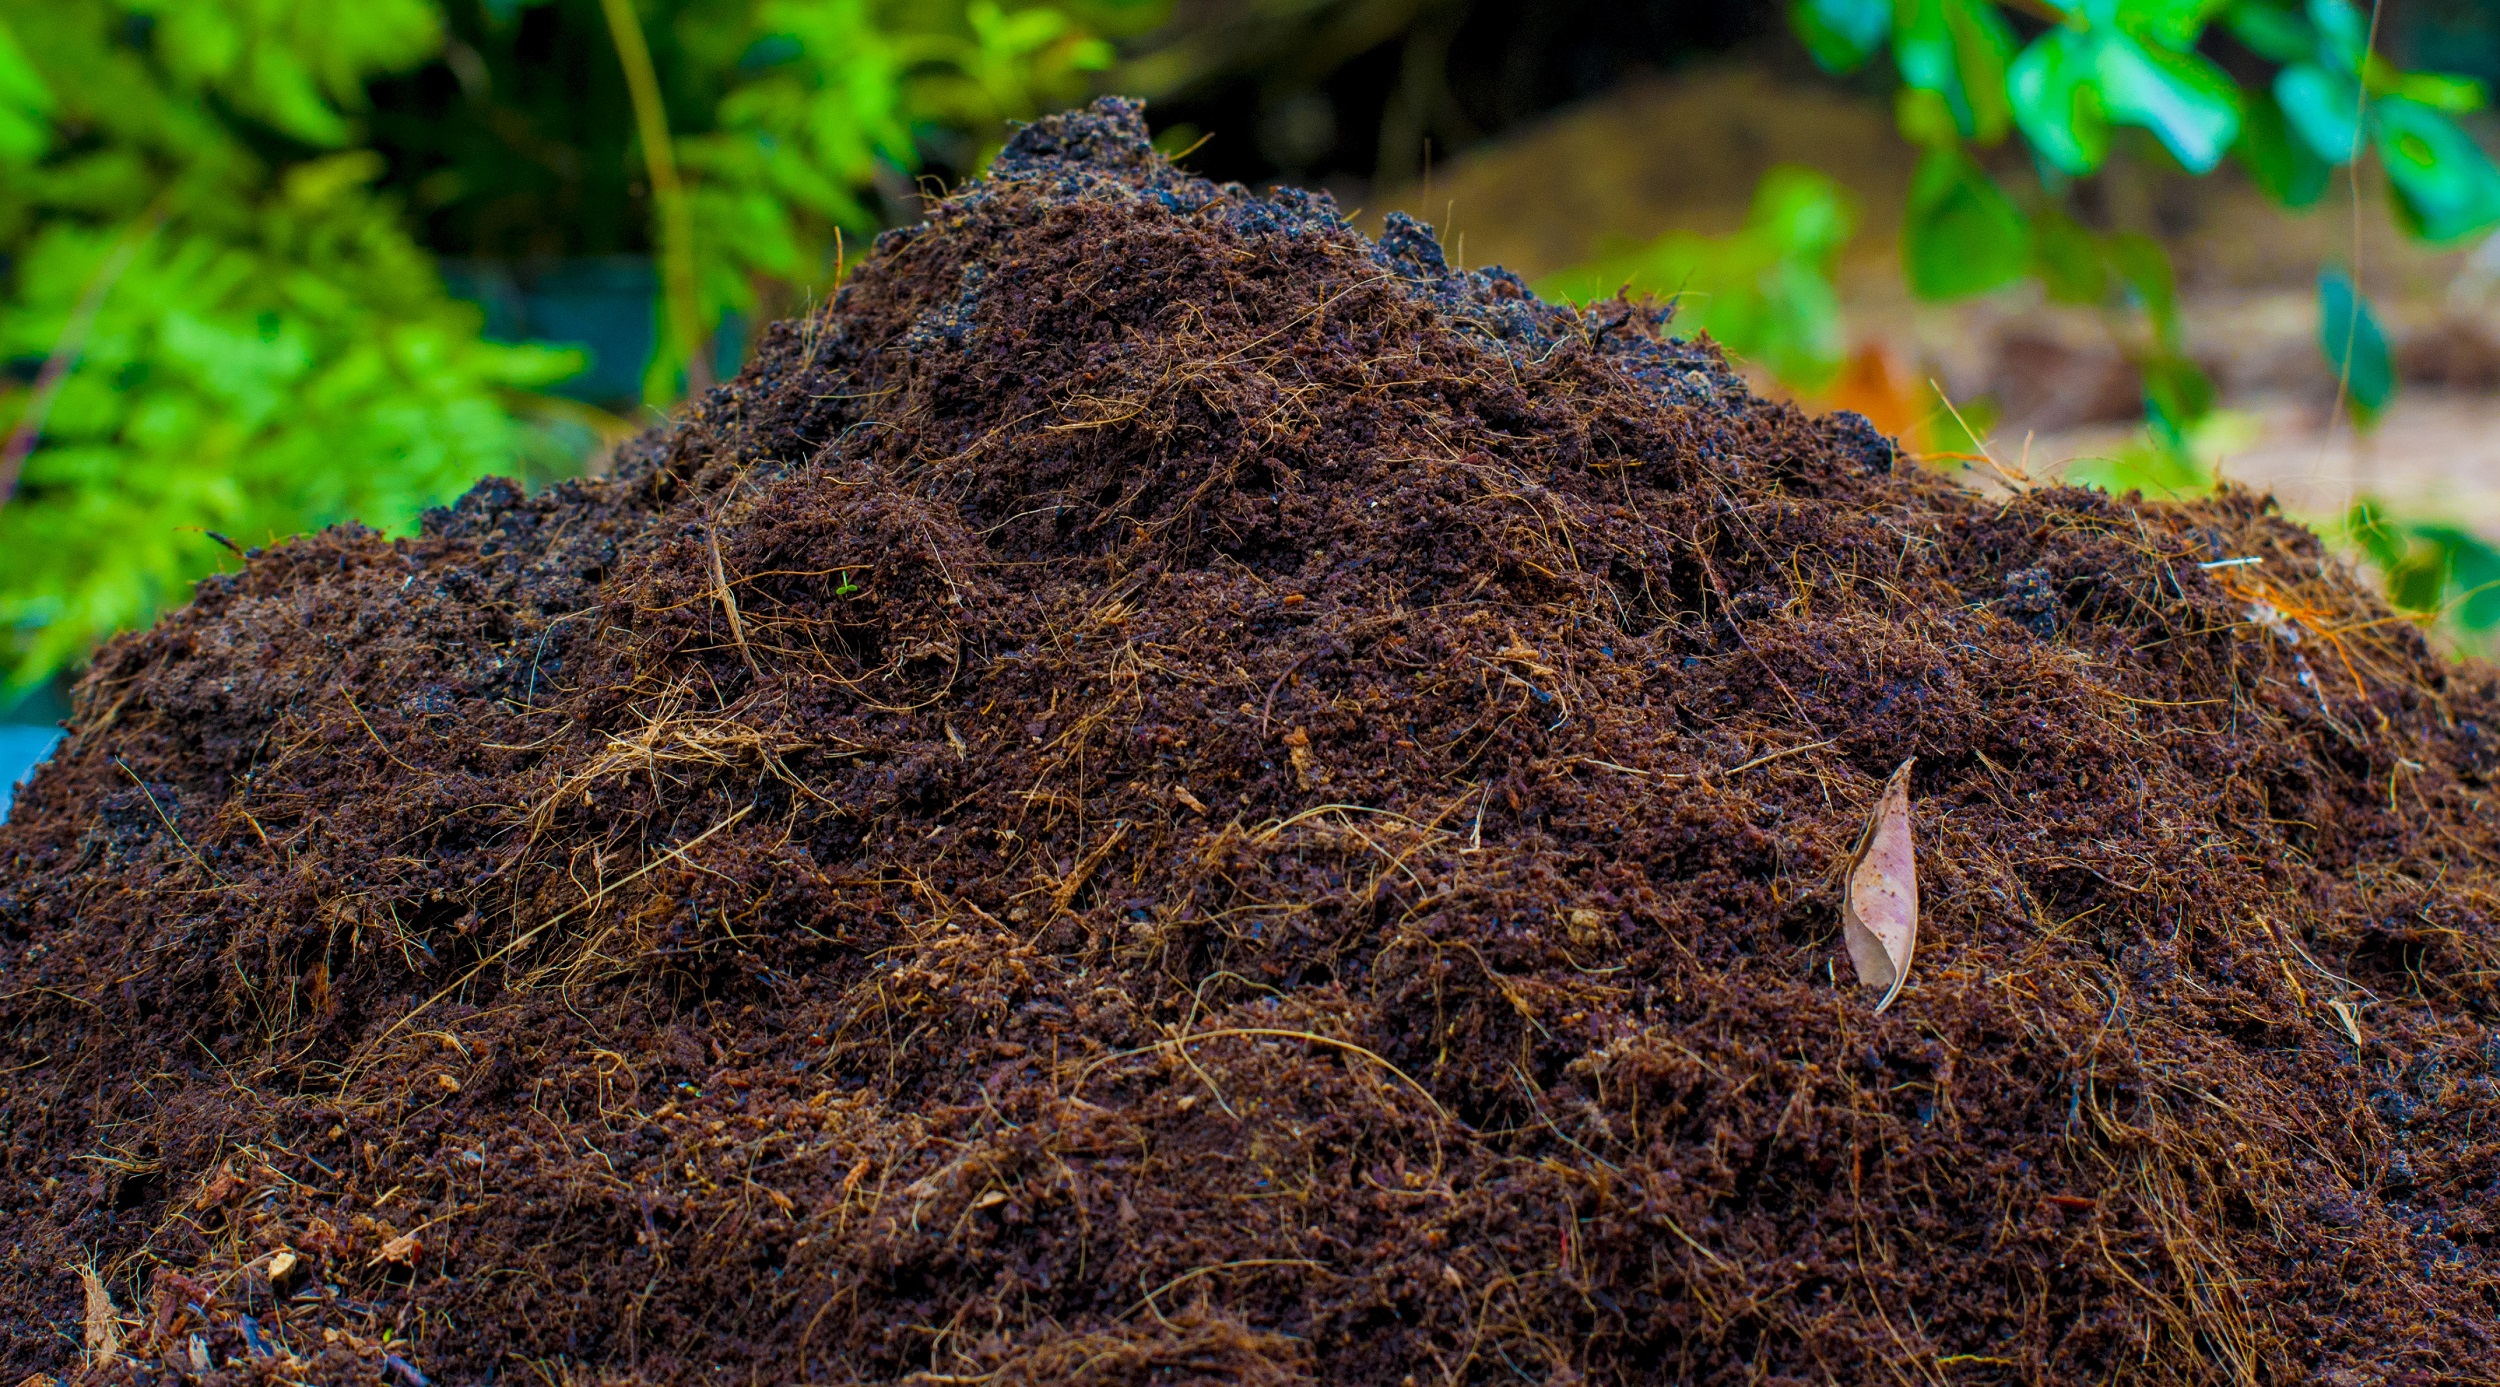 Peat as a fertilizer. The use of peat for fertilizer 32